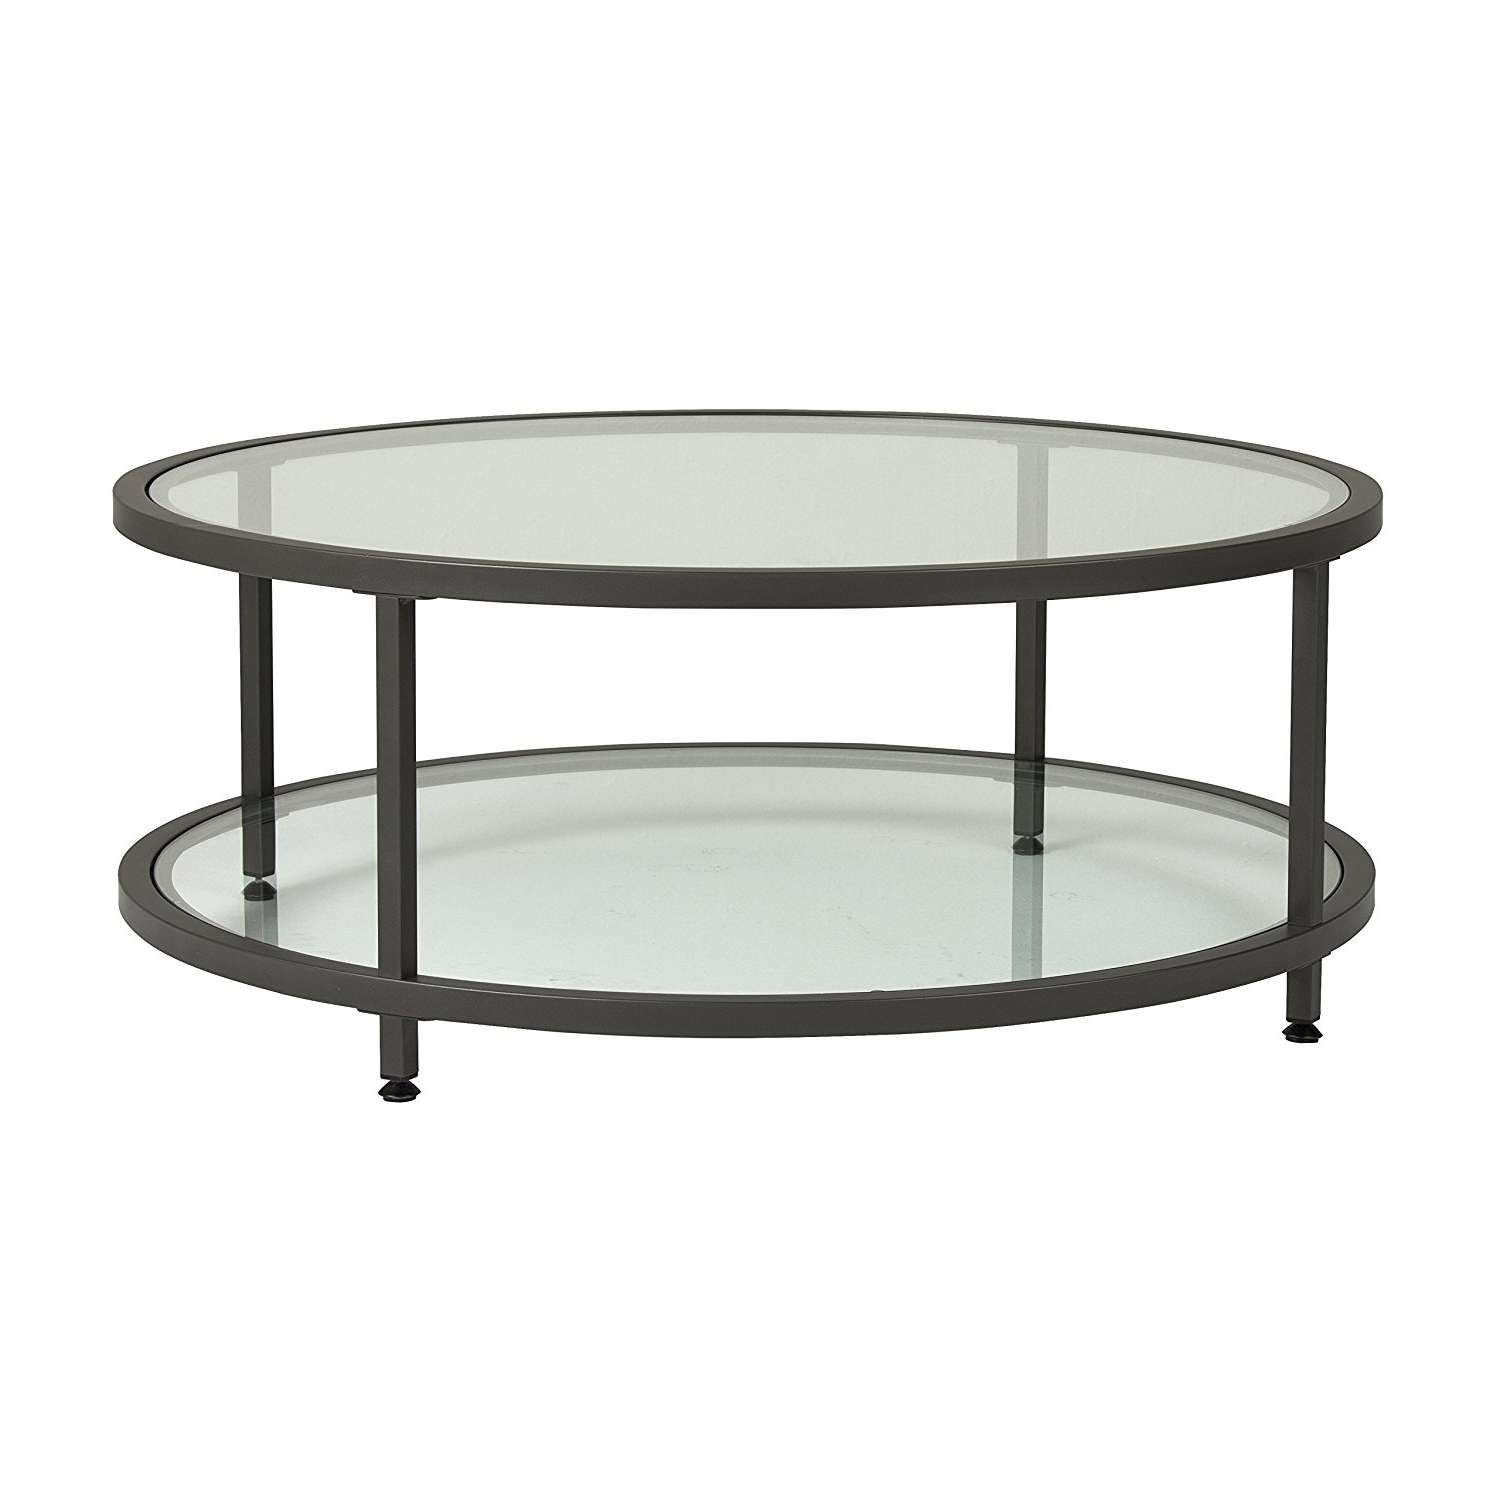 Best And Newest Circular Glass Coffee Tables Throughout Coffee Table : Marvelous Natural Wood Coffee Table Glass Coffee (View 2 of 20)